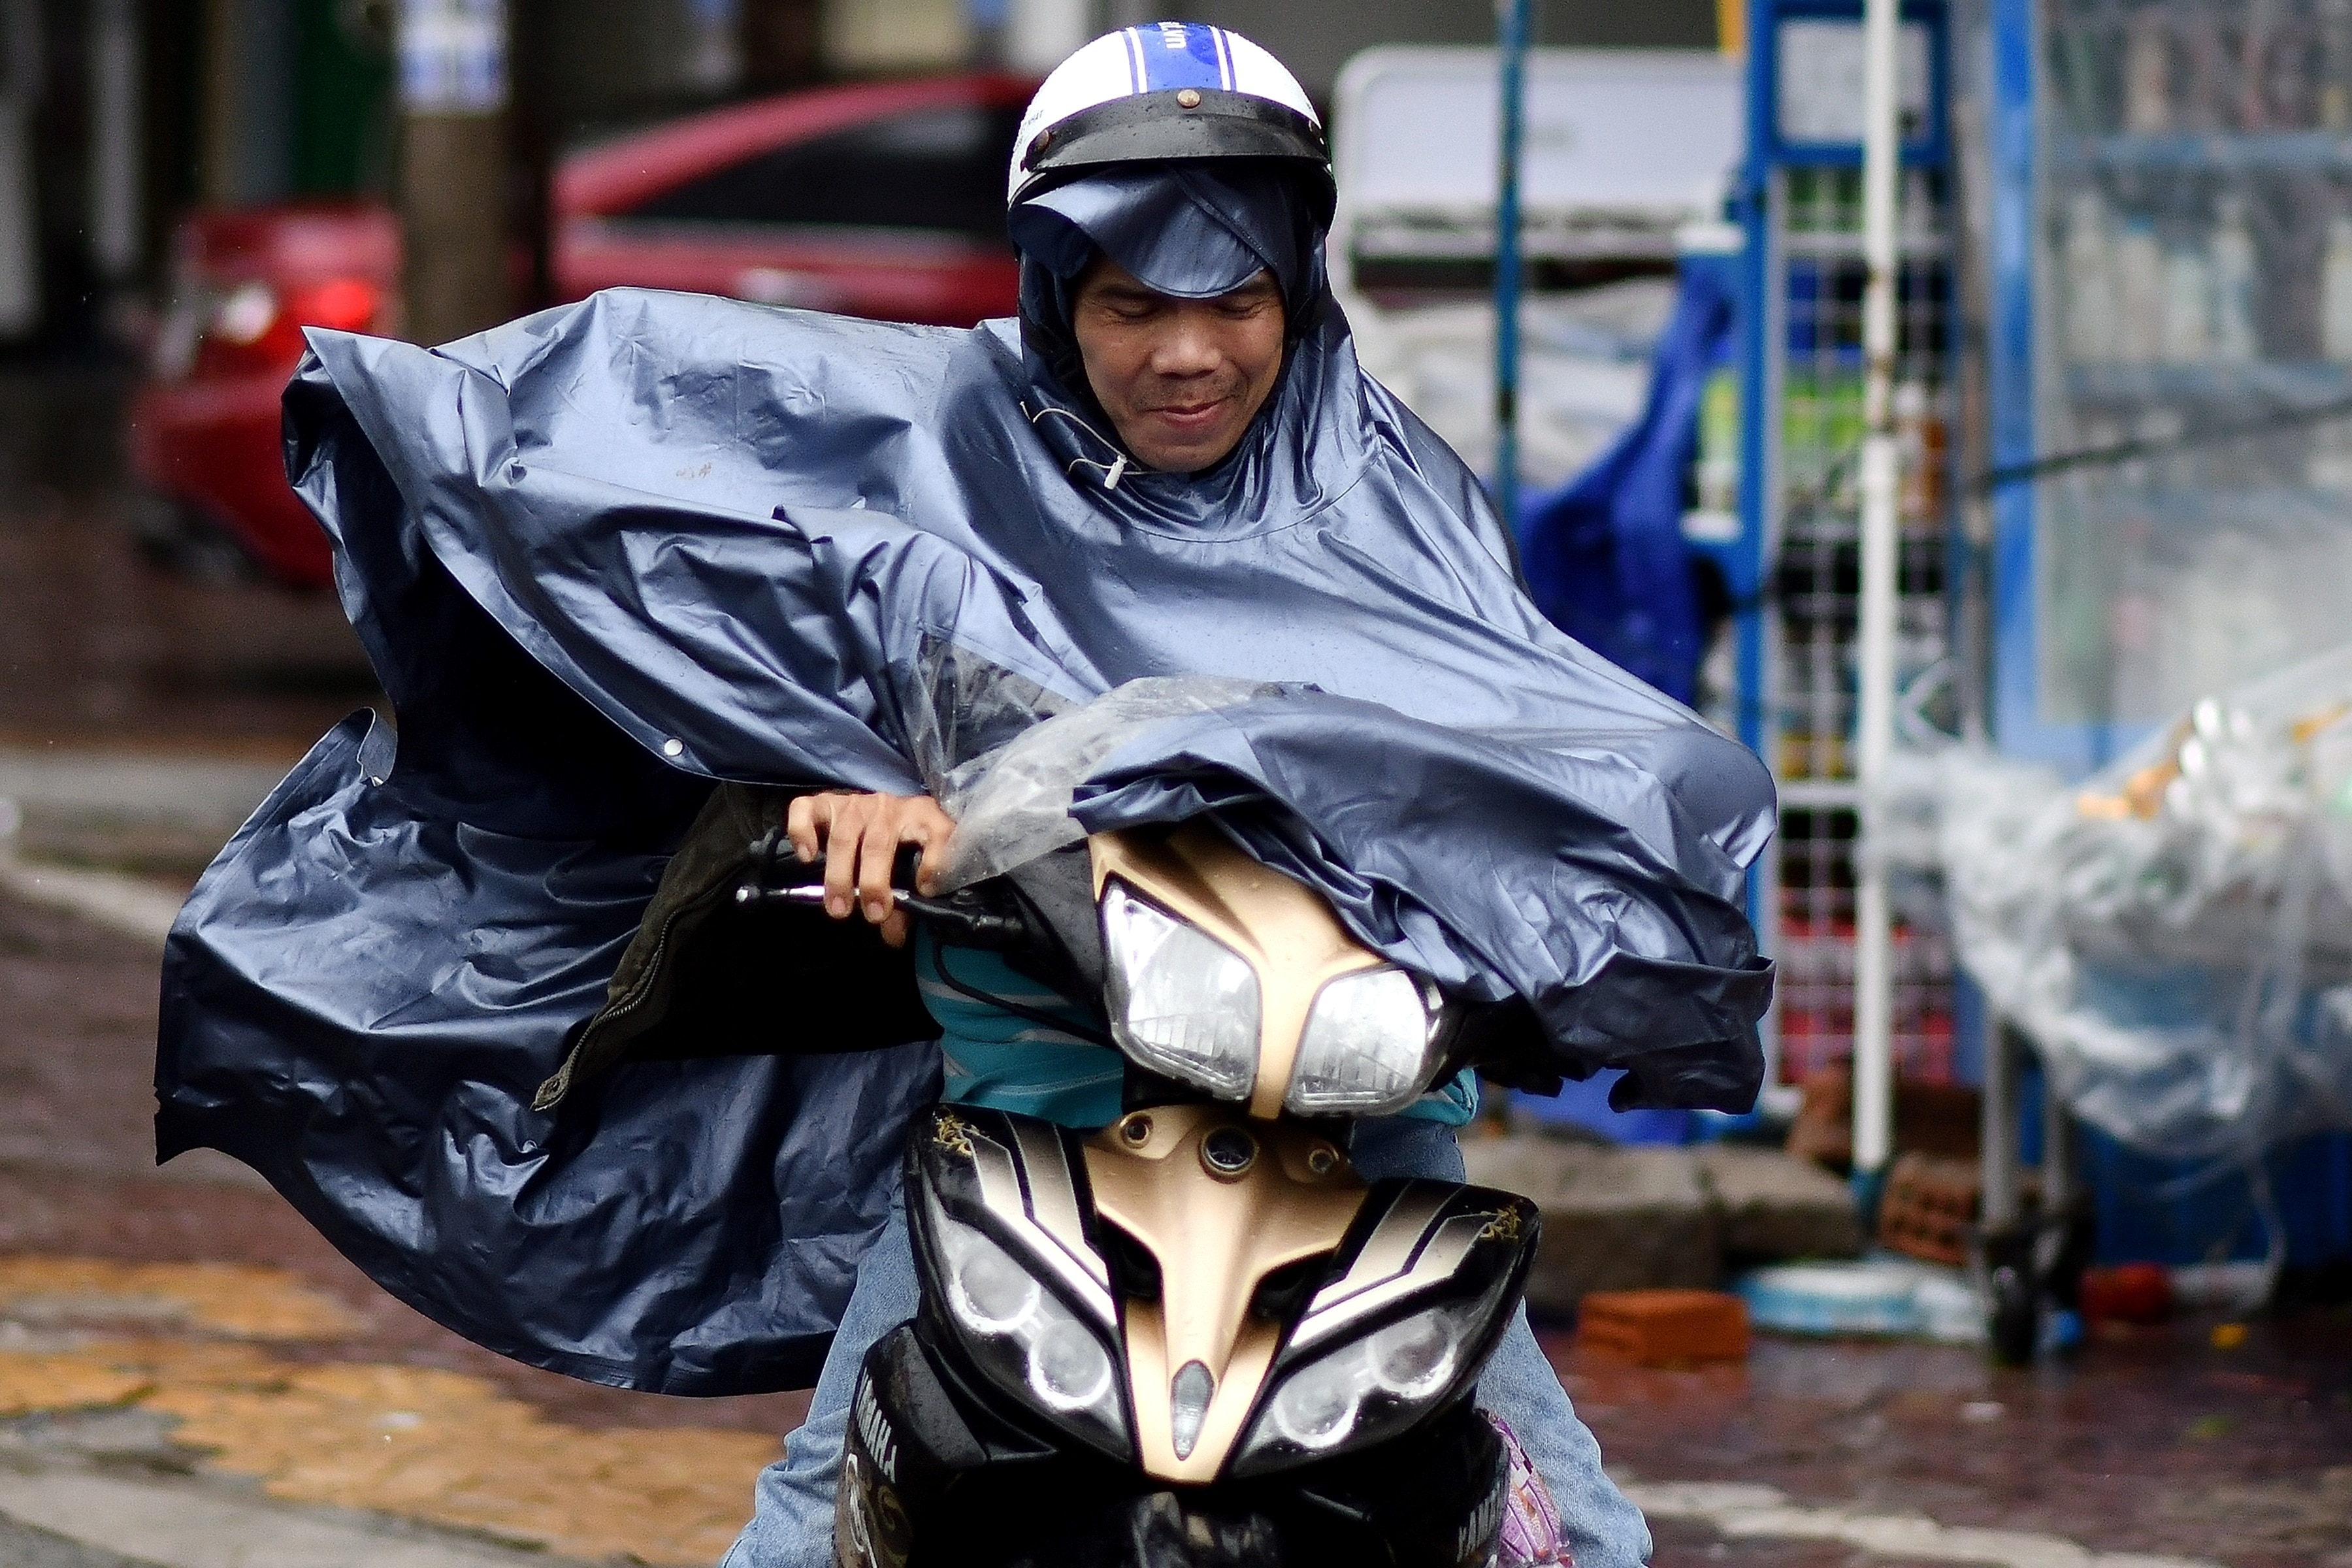 A motorist braves strong winds while riding along a street in central Vietnam's Quang Ngai province on October 28, 2020, as Typhoon Molave makes landfall.